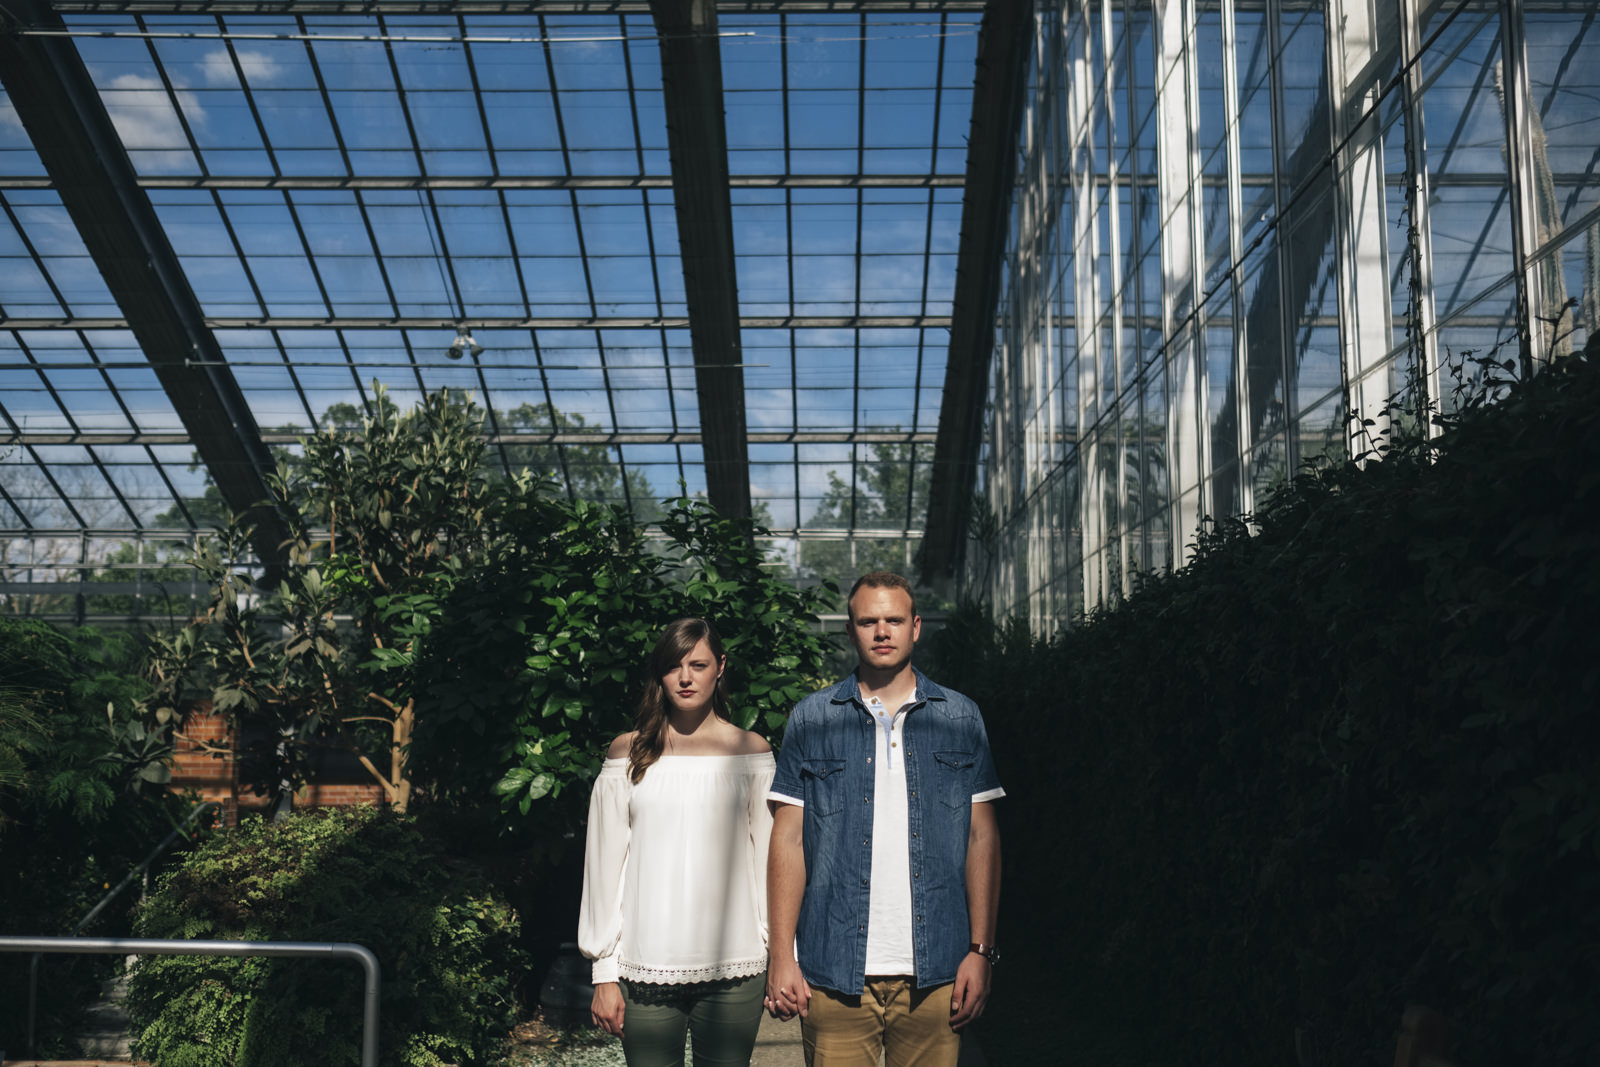 Engagement session in the conservatory at Matthaei Botanical Gardens.